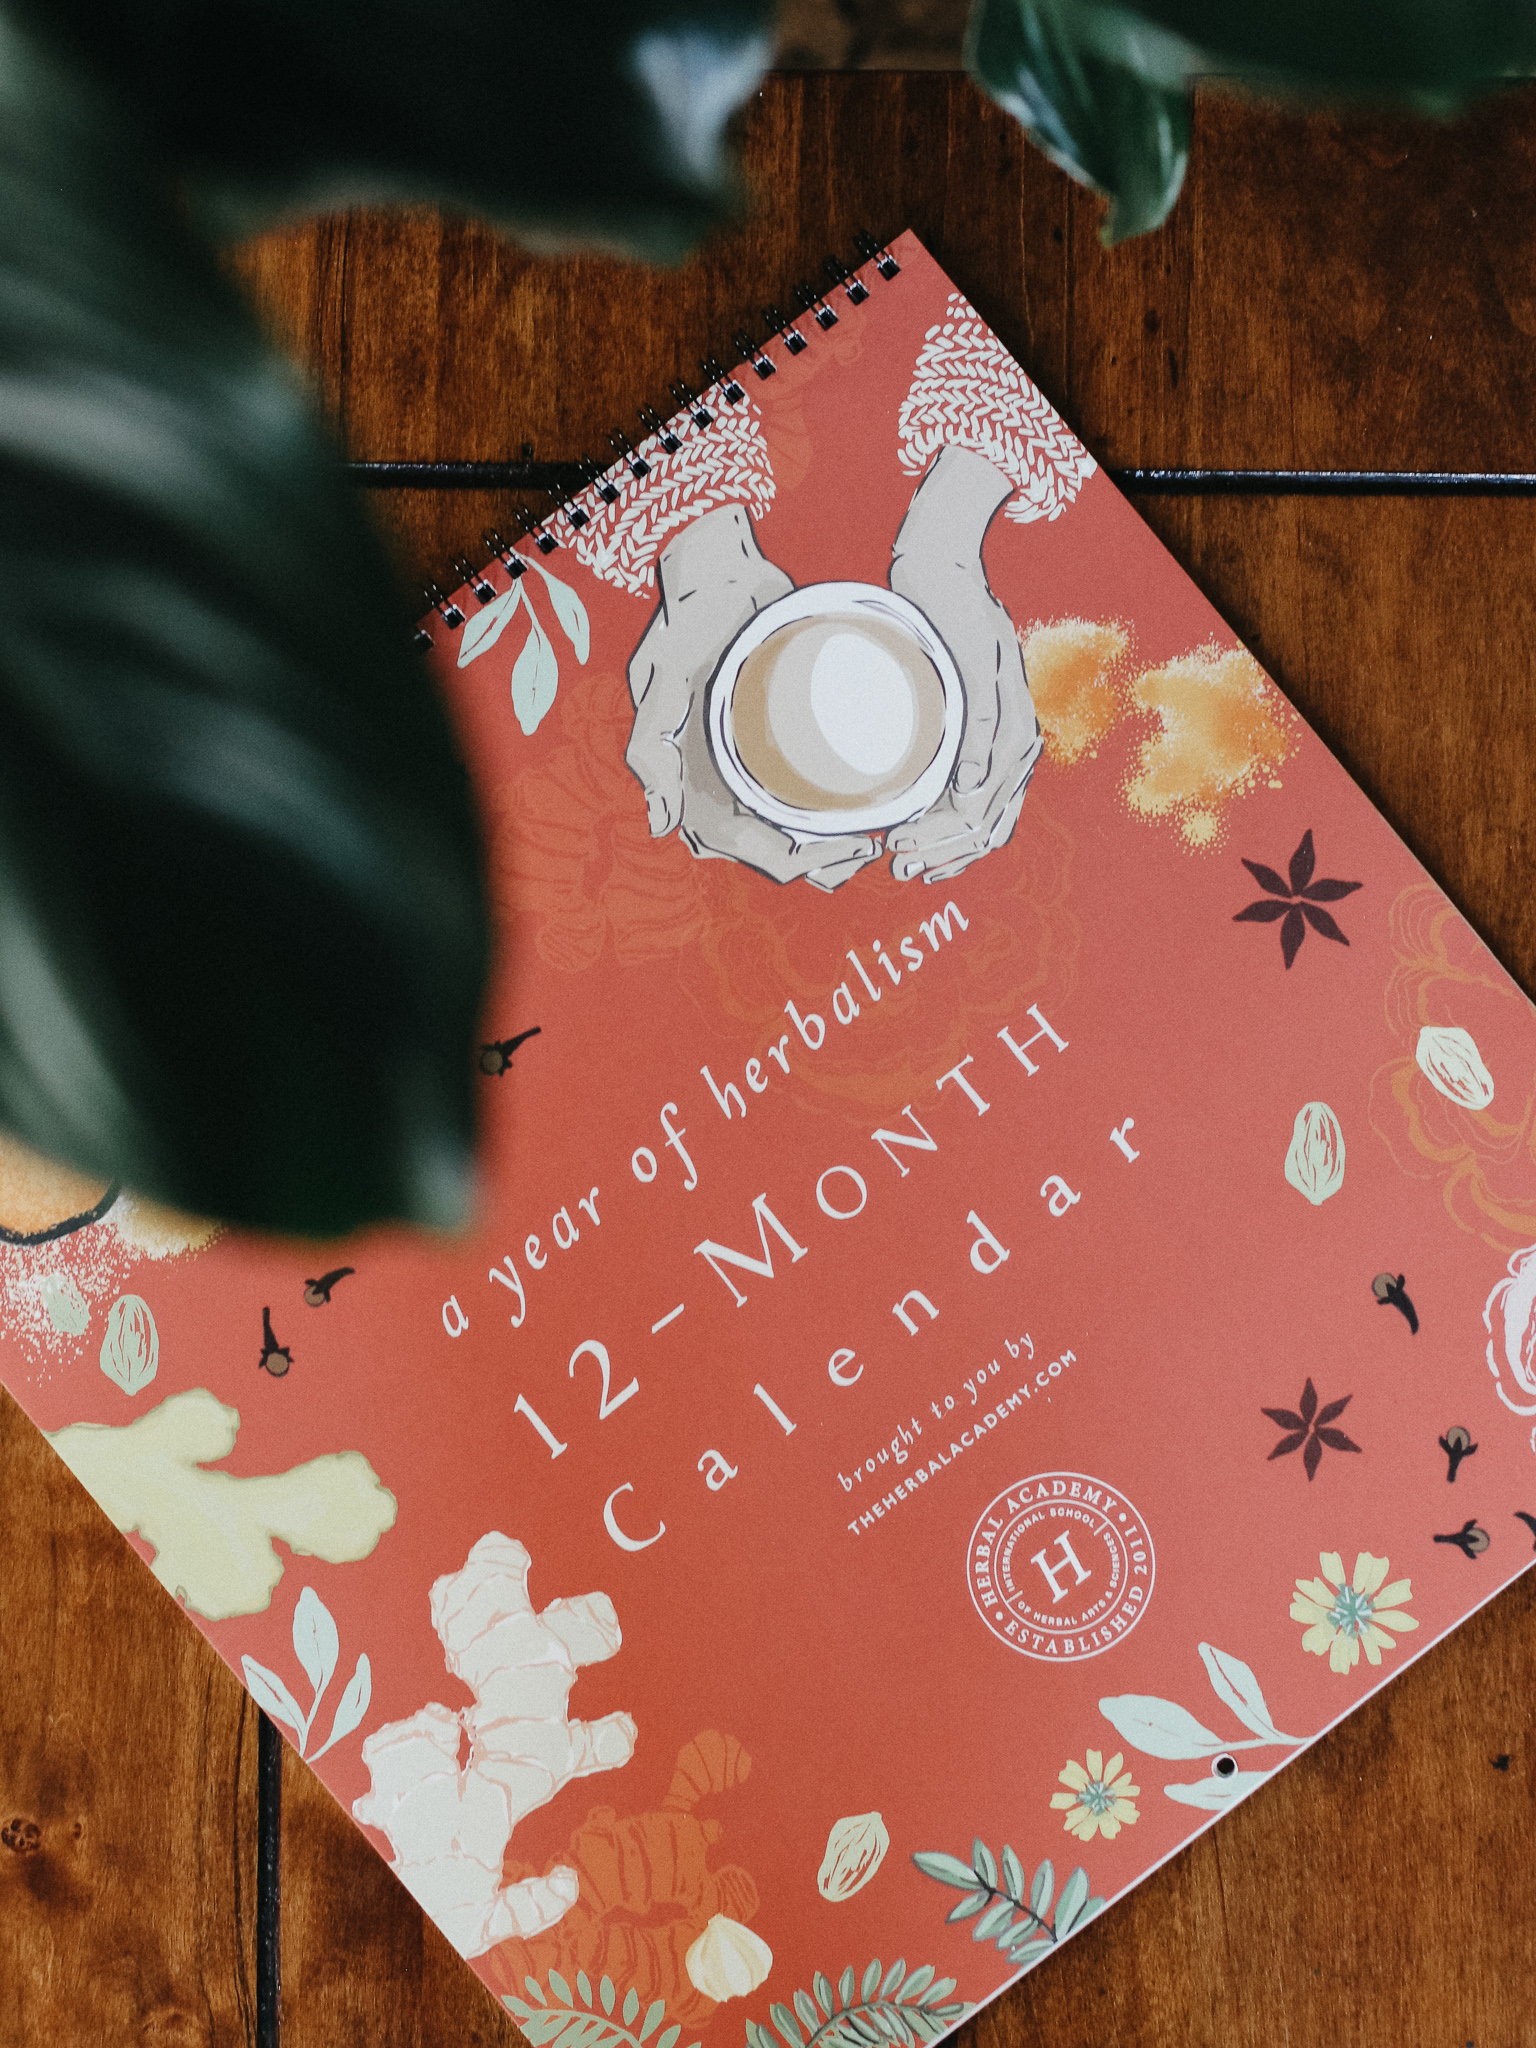 Herbal Academy calendar is one of our favorite gifts for herbalists